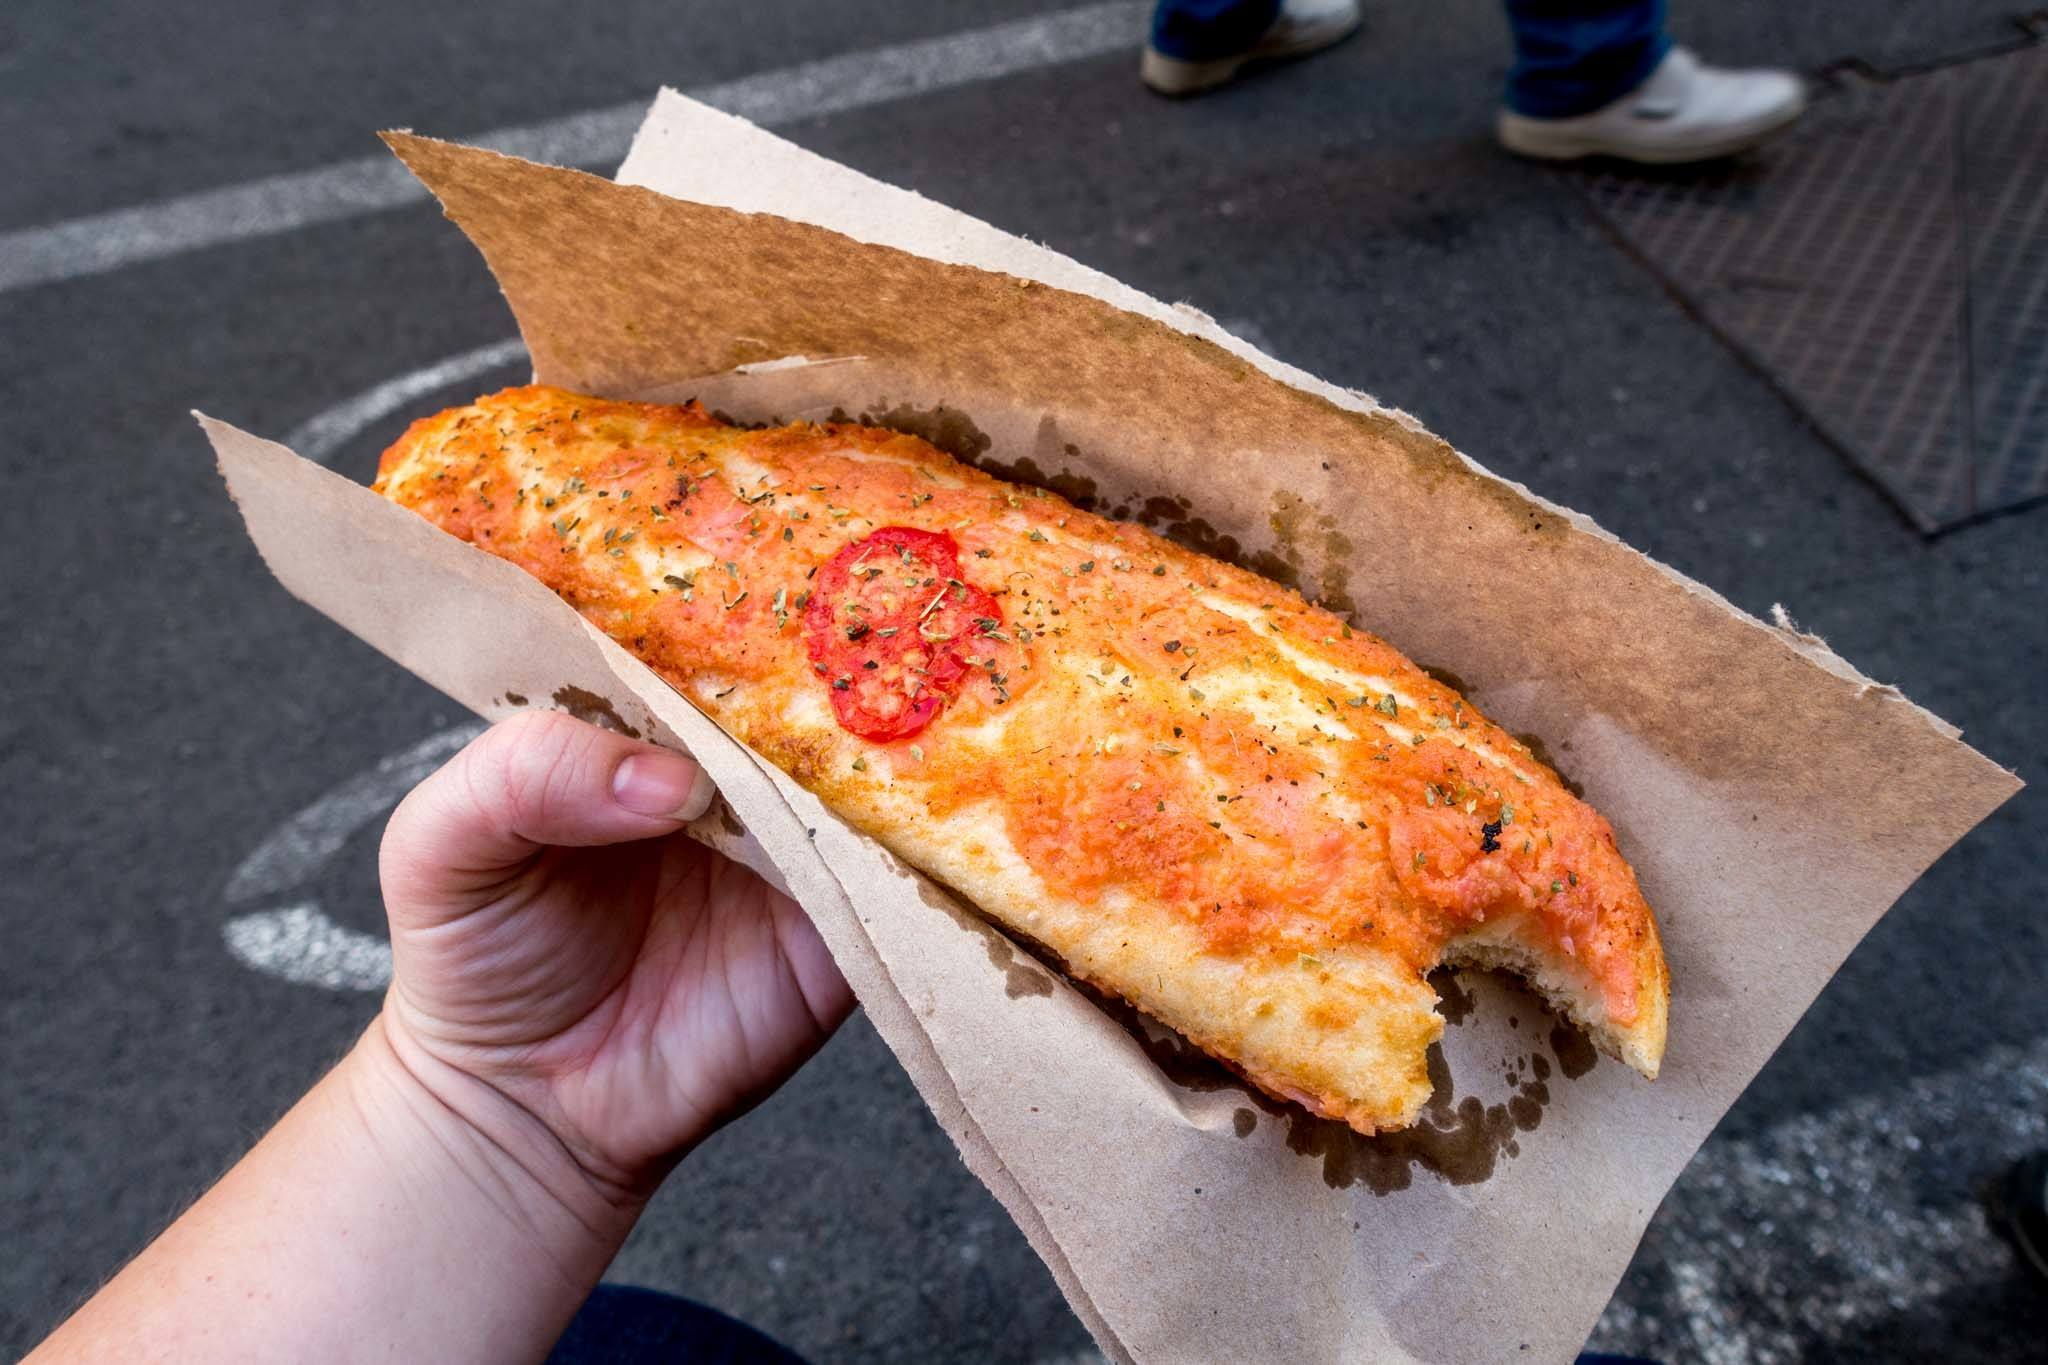 Bread covered in melted cheese and tomato sauce